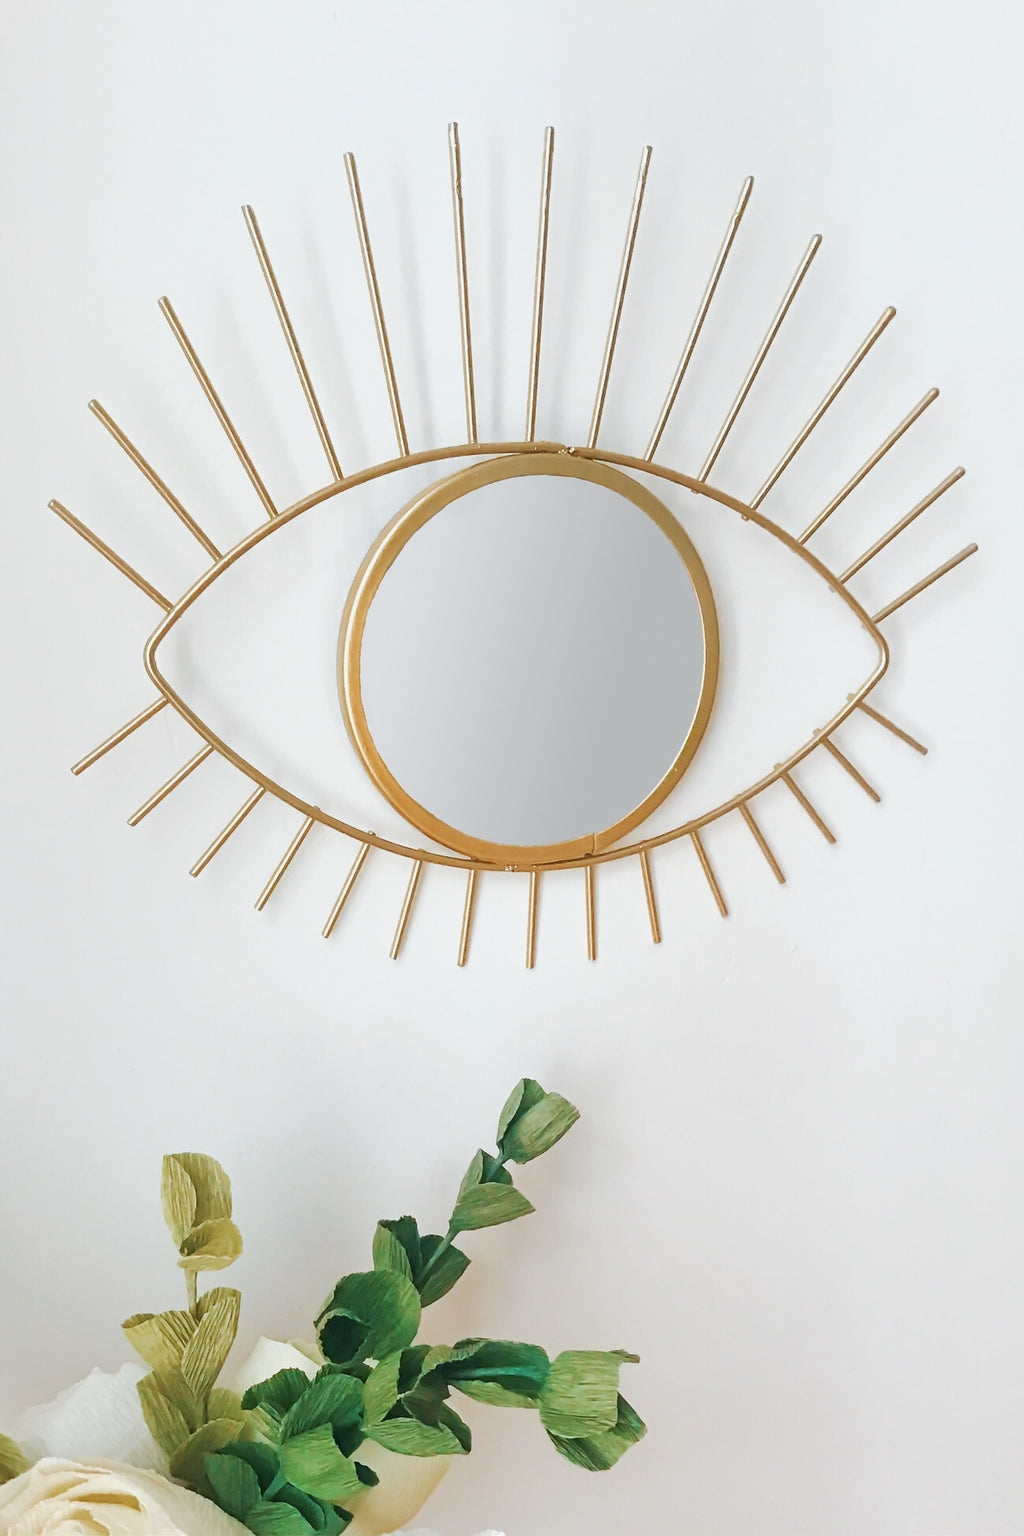 Eye-shaped mirror